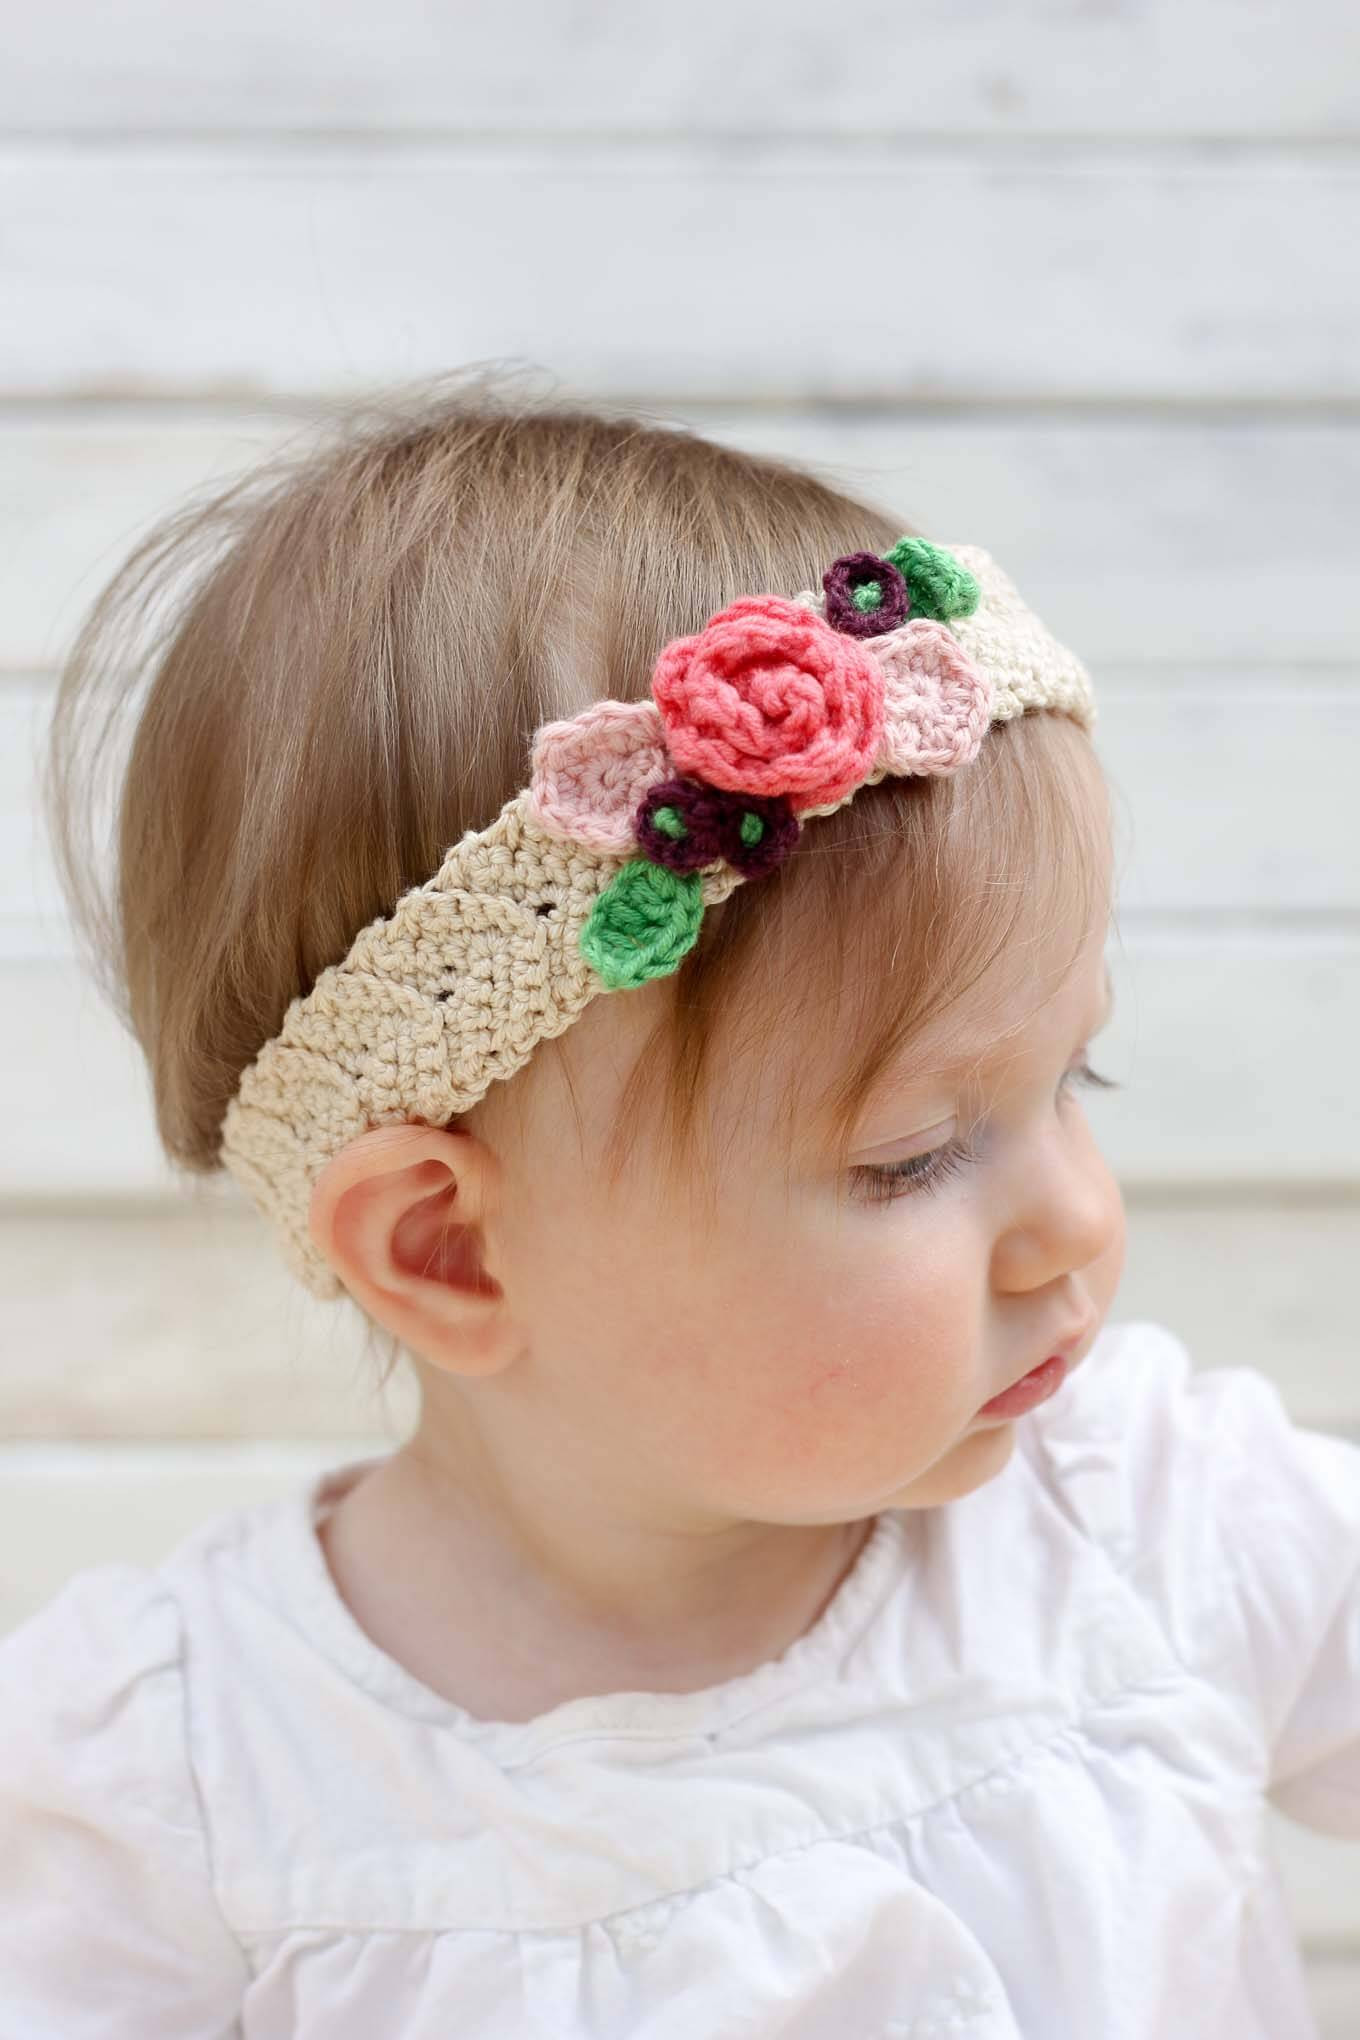 Free Crochet Flower Patterns Lovely Free Crochet Flower Headband Pattern Baby toddler Adult Of Amazing 42 Images Free Crochet Flower Patterns